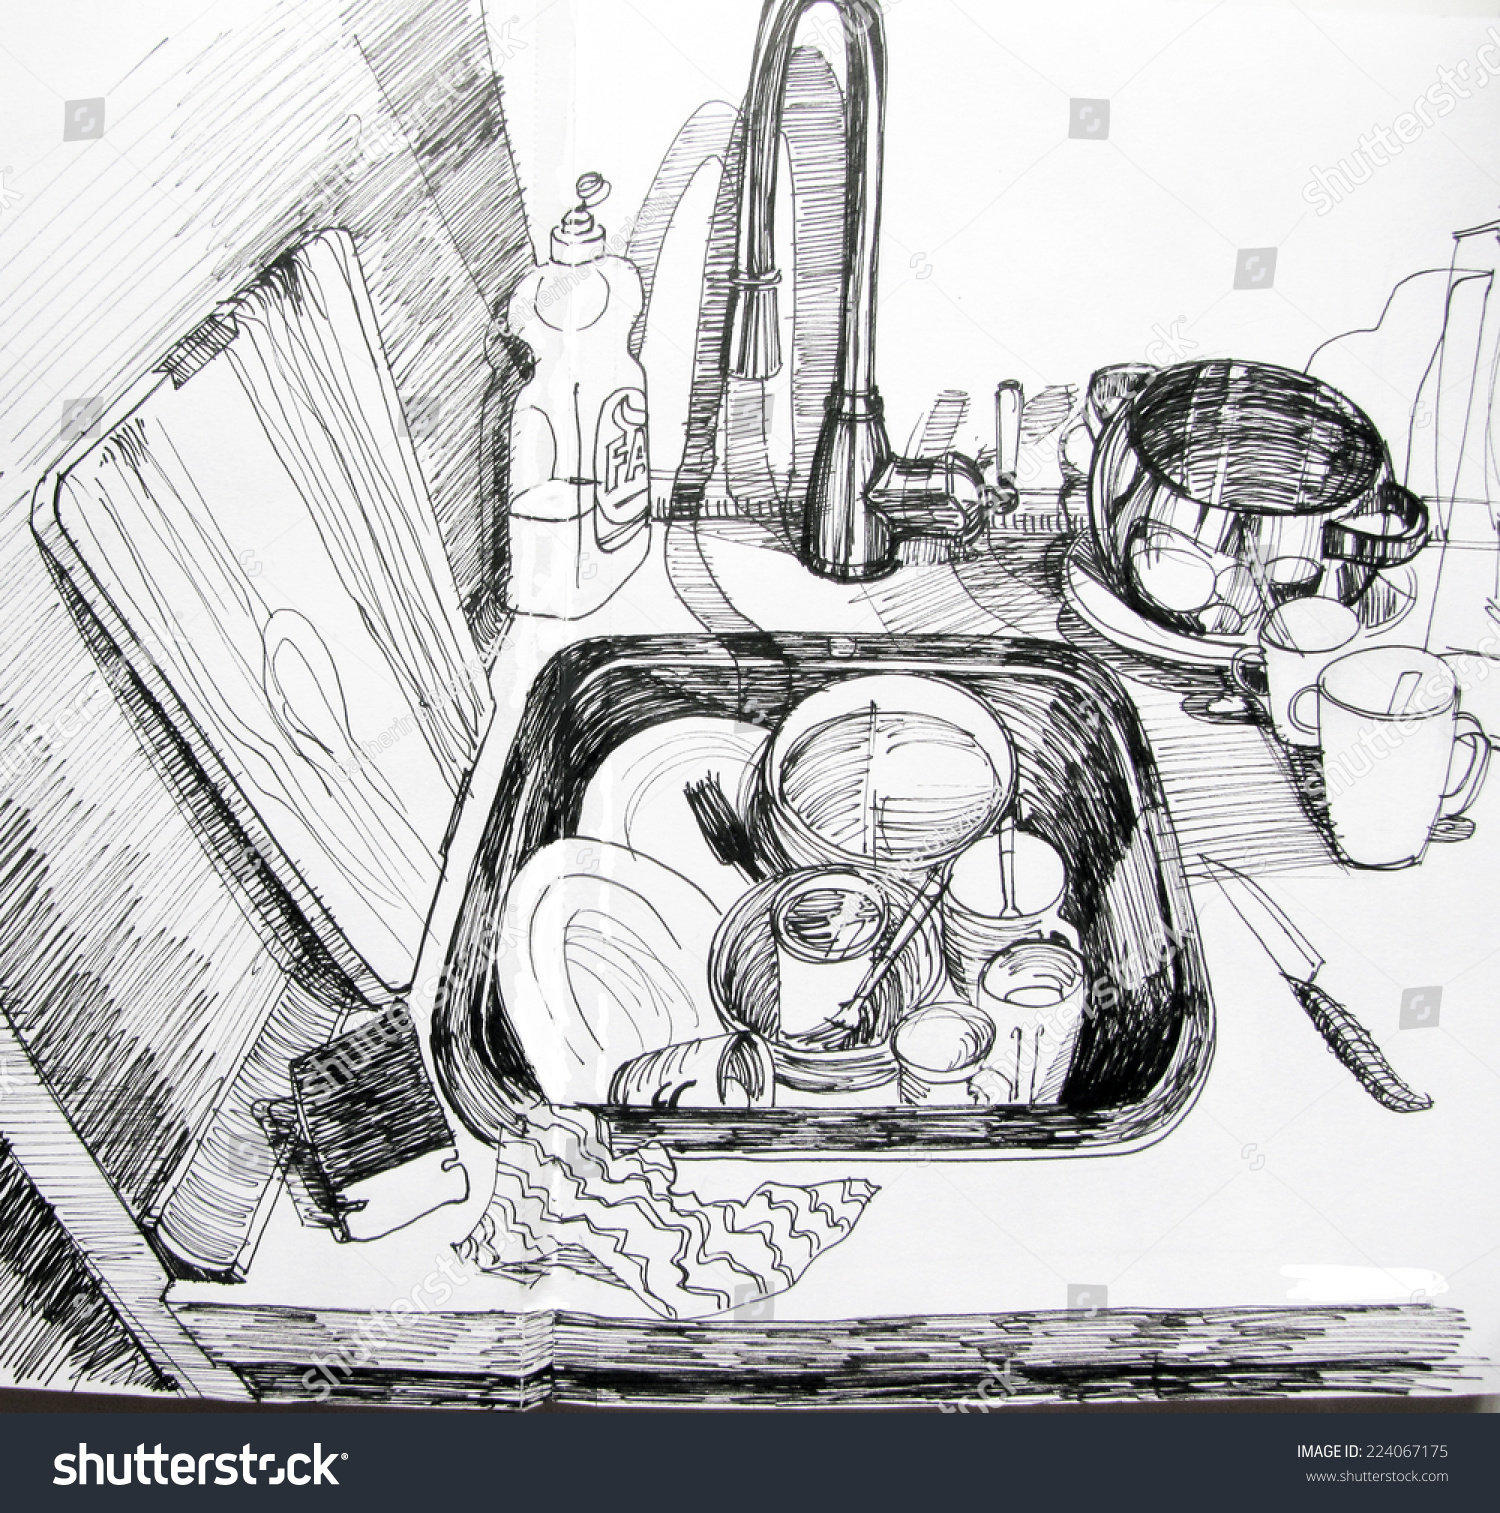 The Kitchen Sink Art Drawing Sketch Sketchbook By: Dishes In The Sink. Hand-Drawn Liner Graphic Illustration